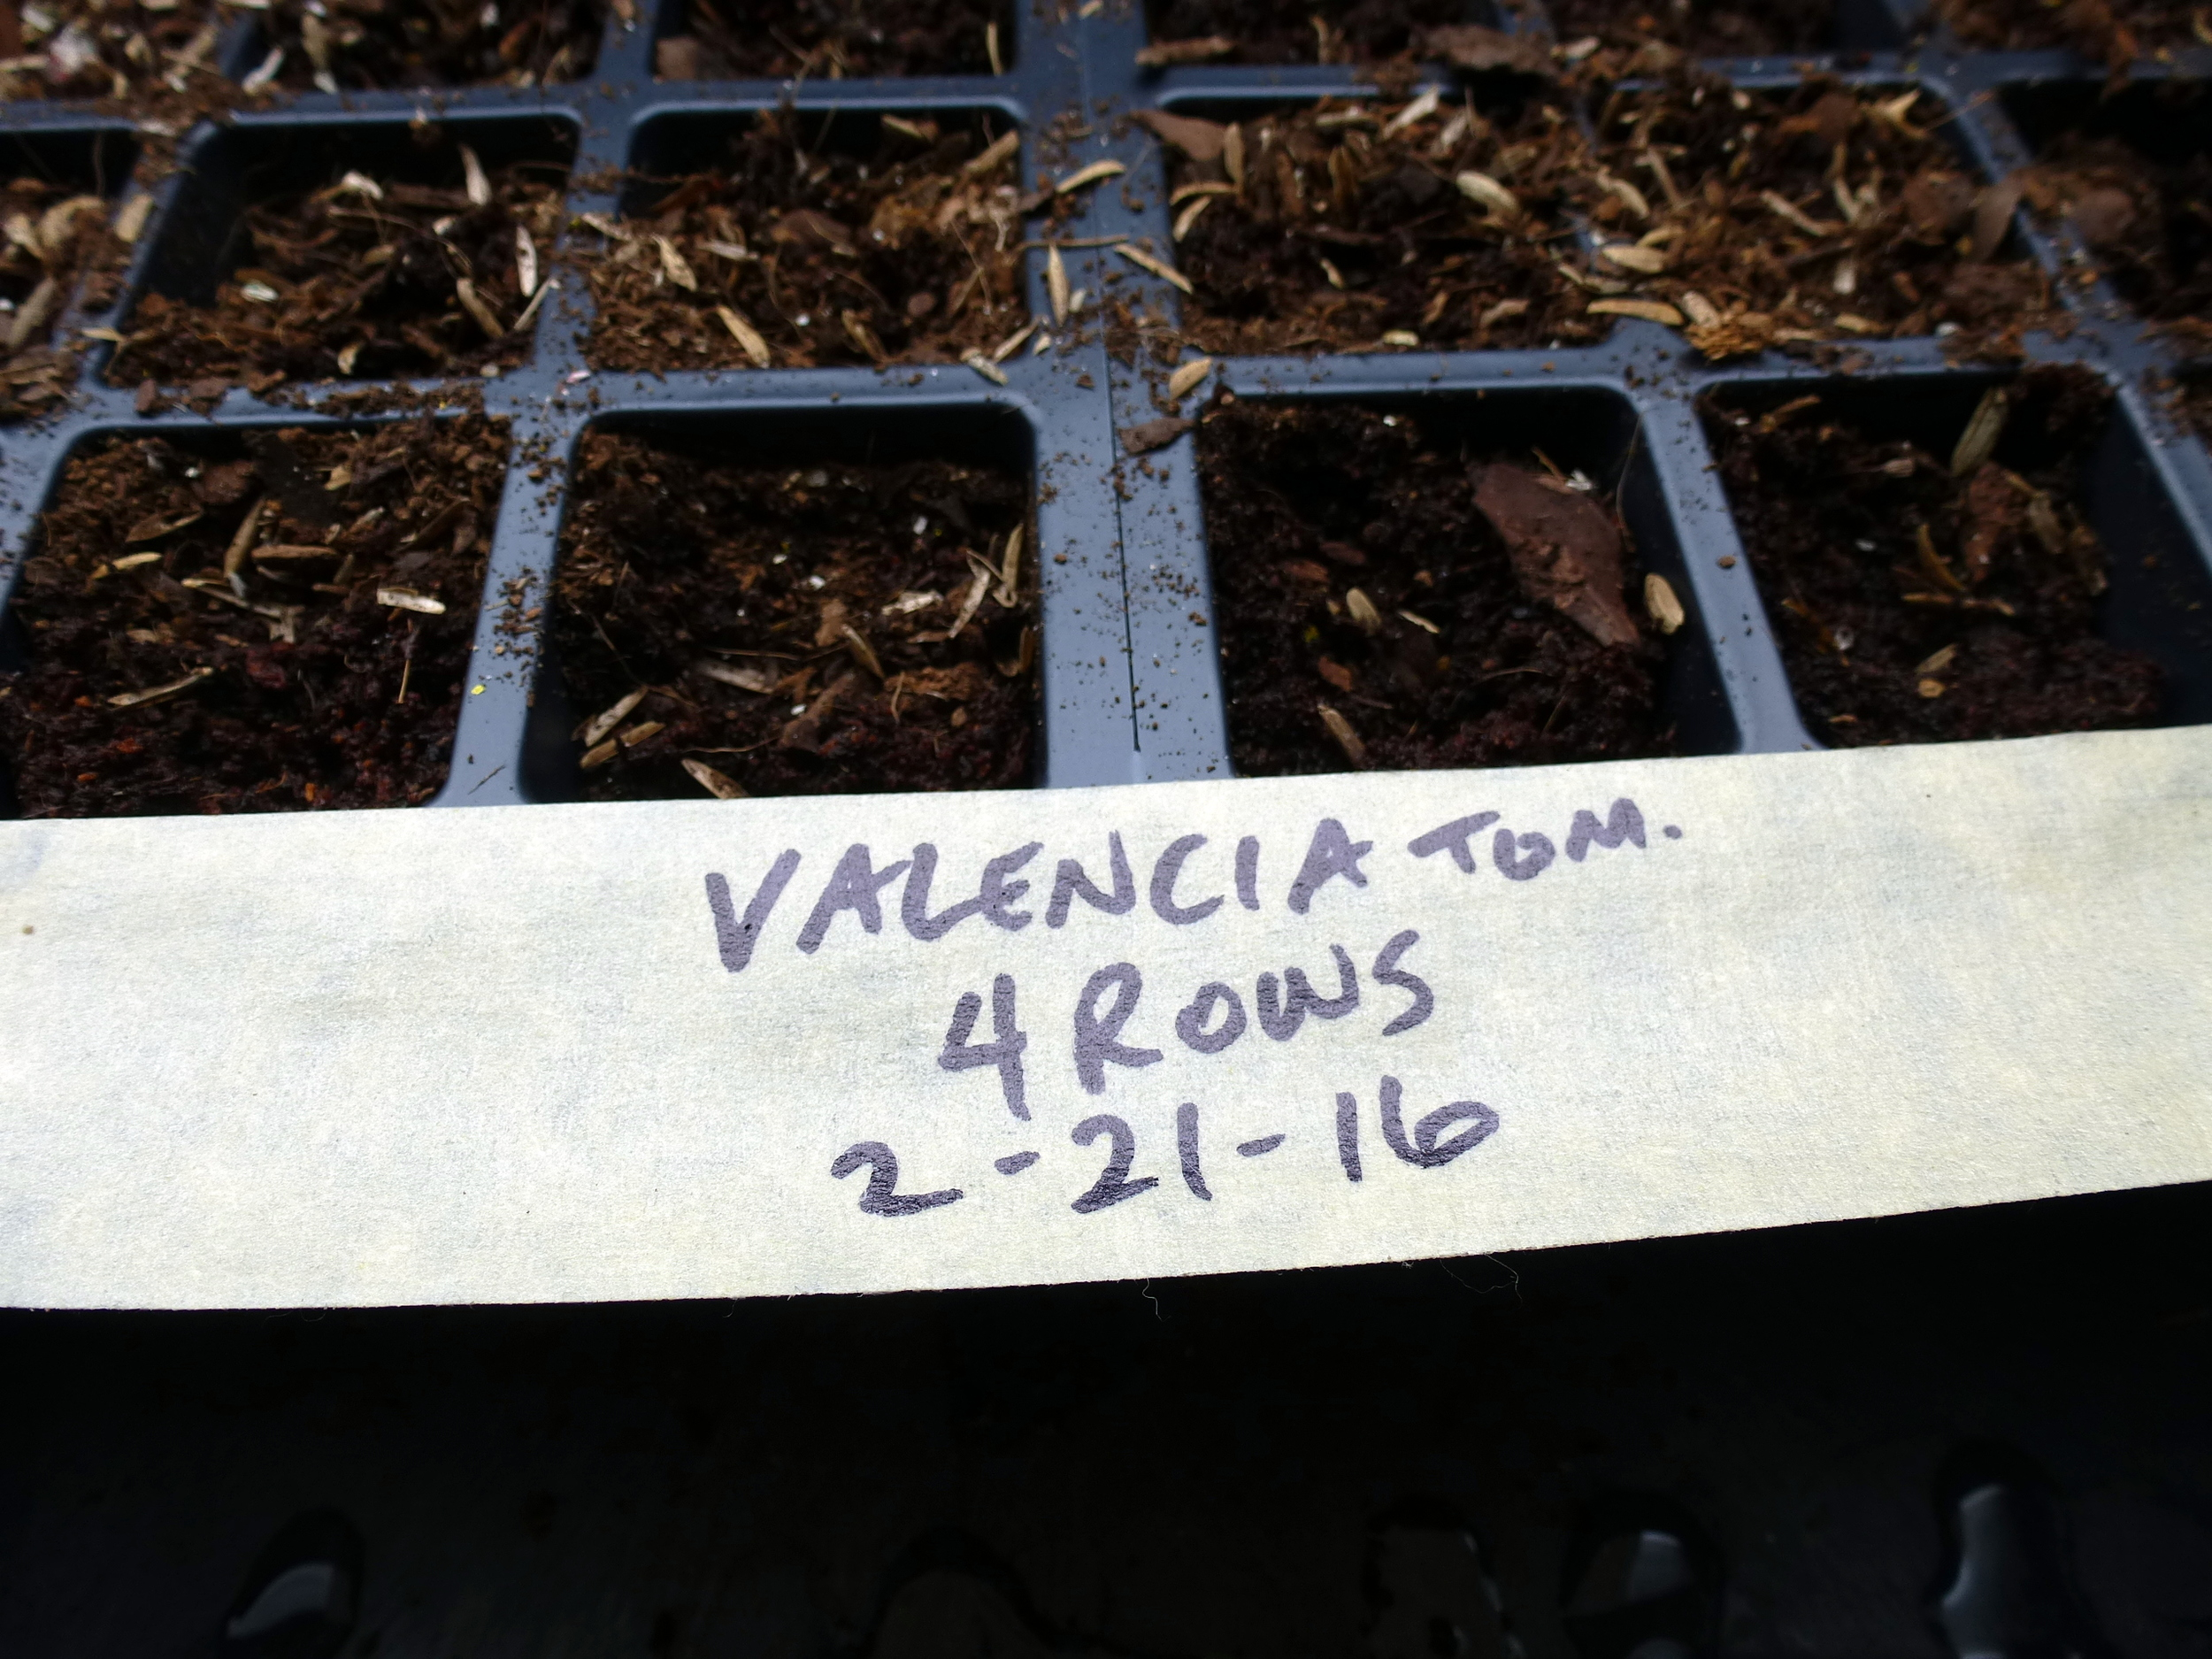 Simple labels at the time of planting can alleviate confusion later